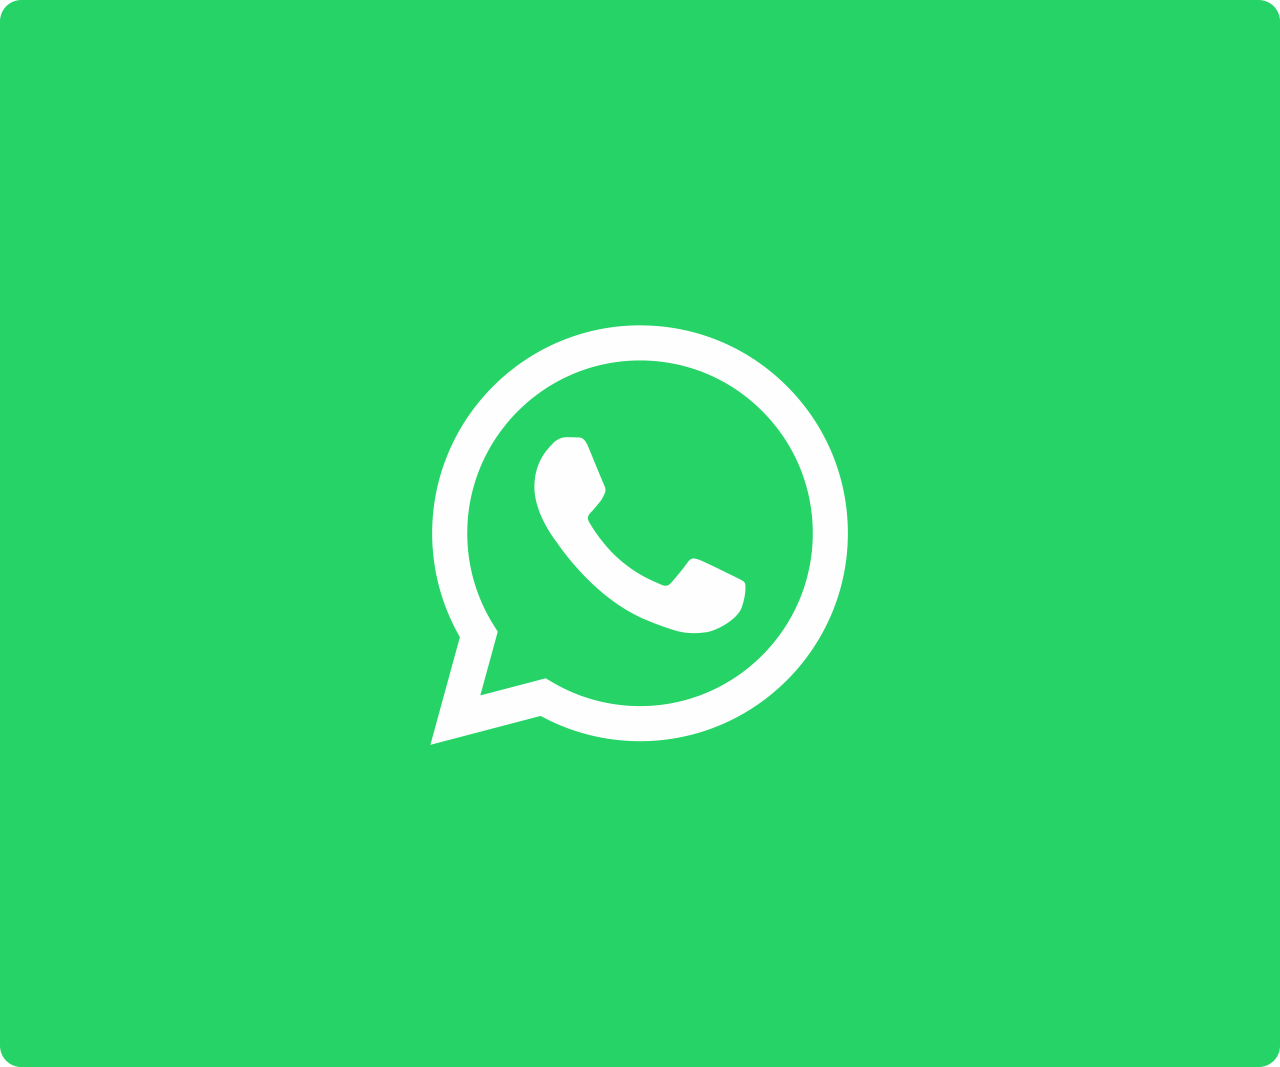 WhatsApp icon with green background